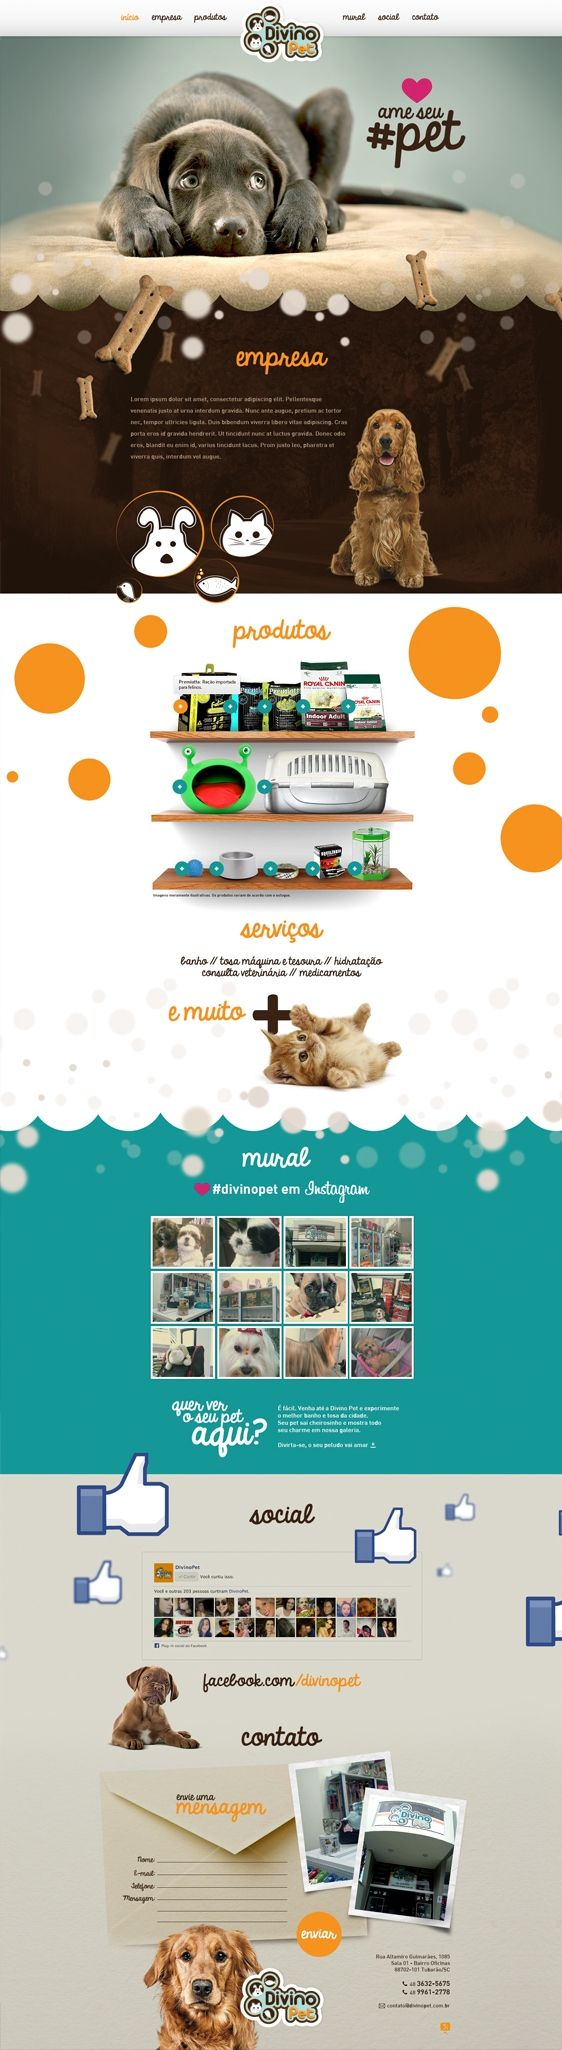 Unique Web Design, Divino Pet #WebDesign #Design